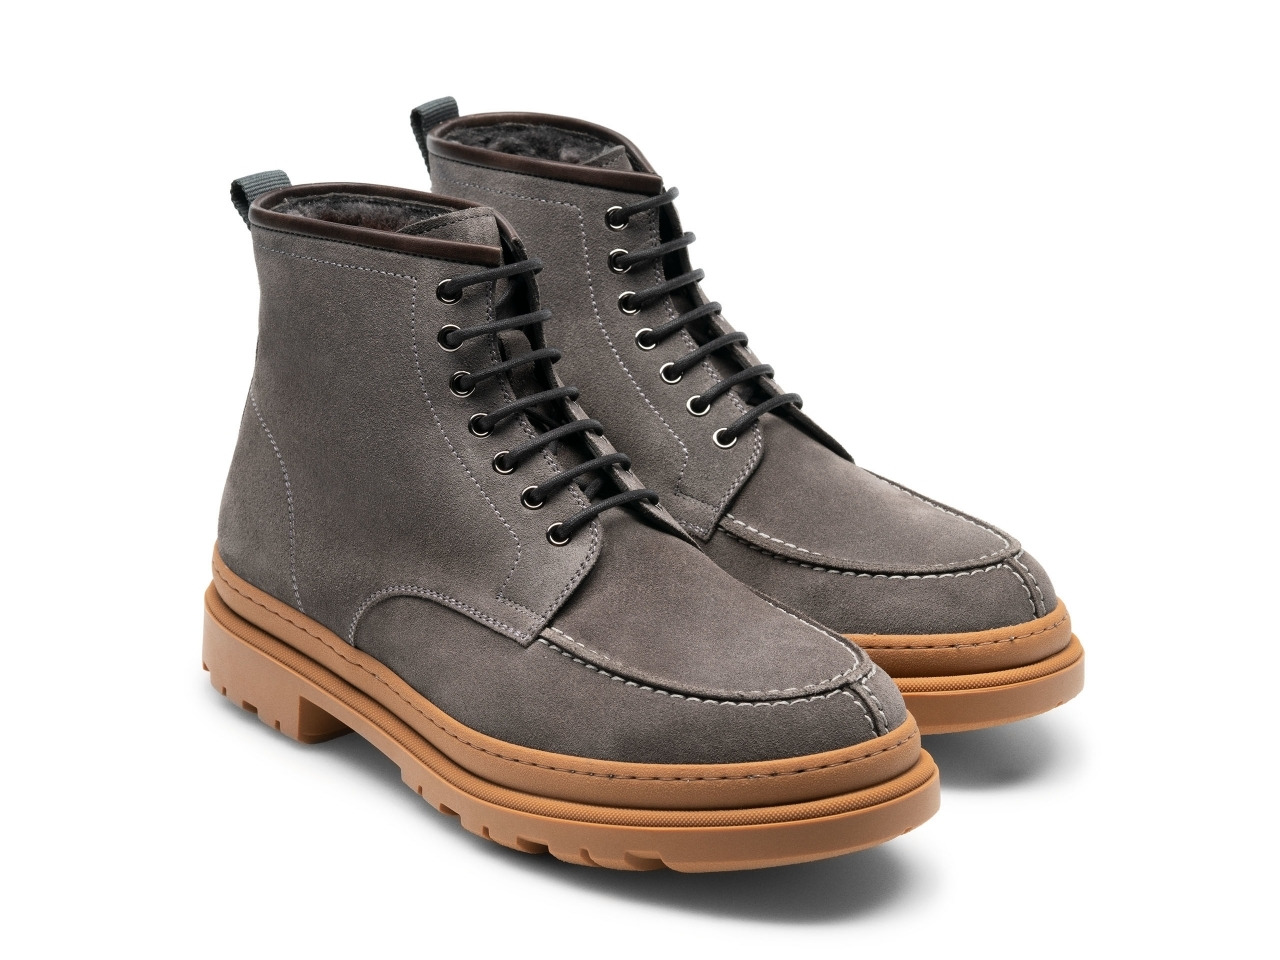 Pair of the Lupin Grey Suede